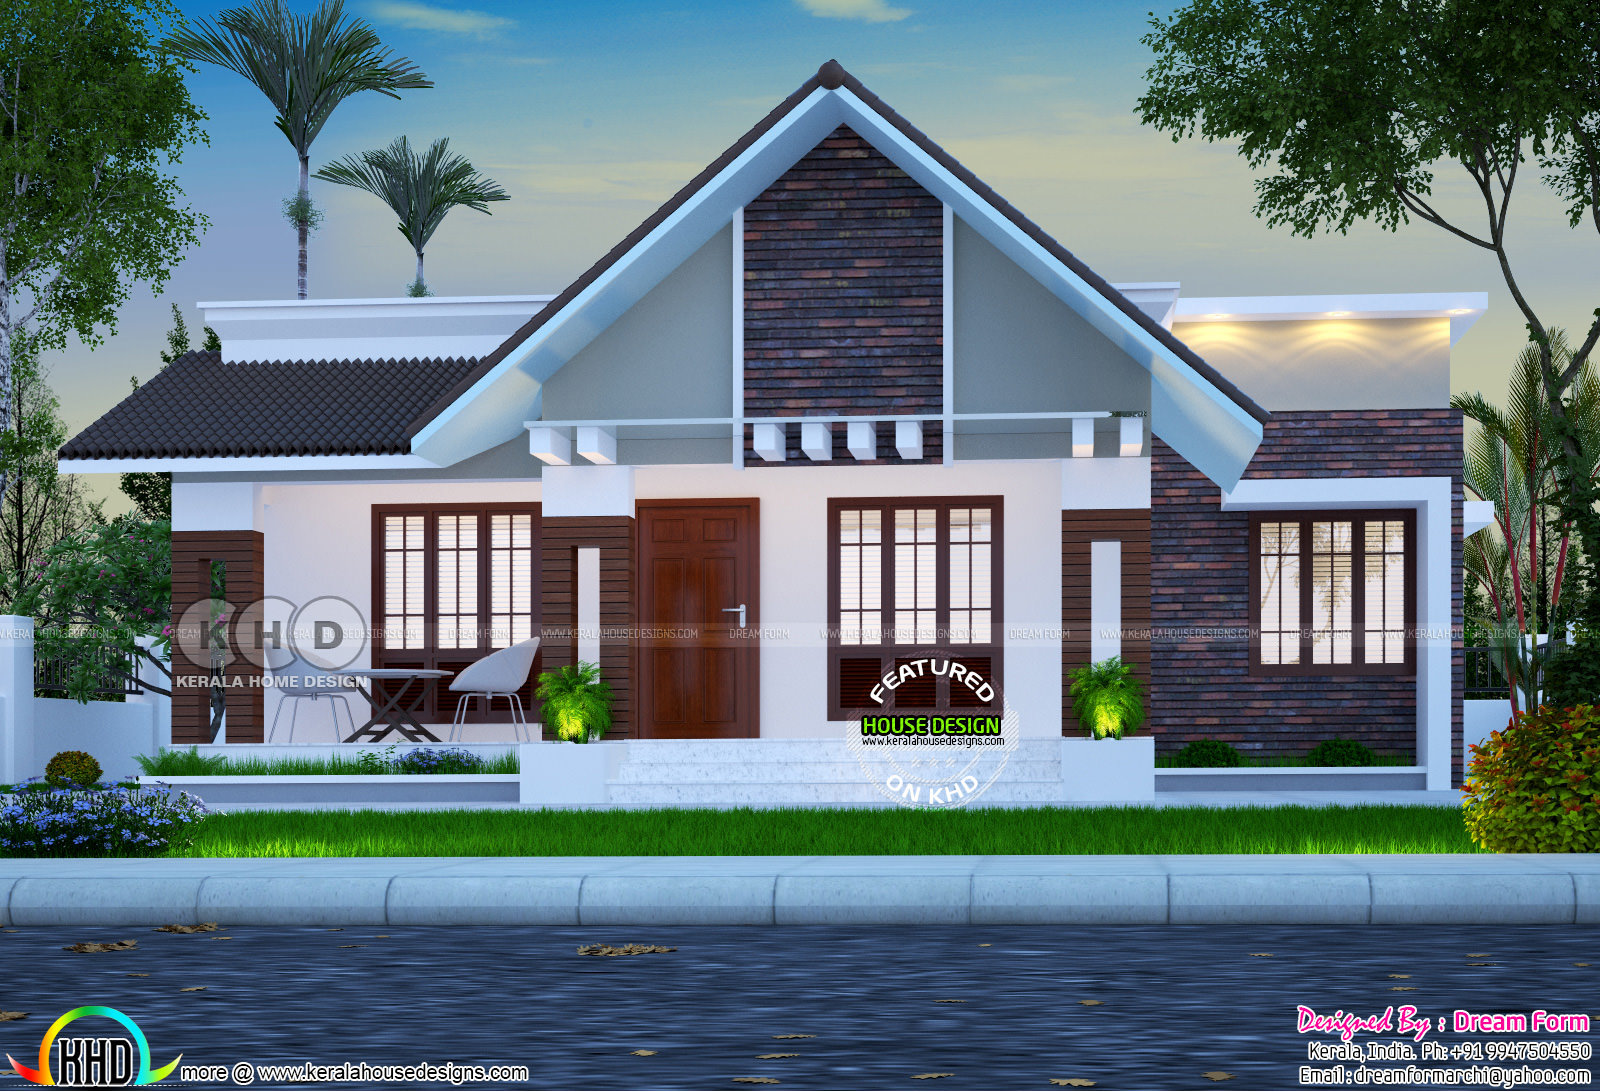 Superb low cost house plan kerala home design and floor for Tavoli design low cost